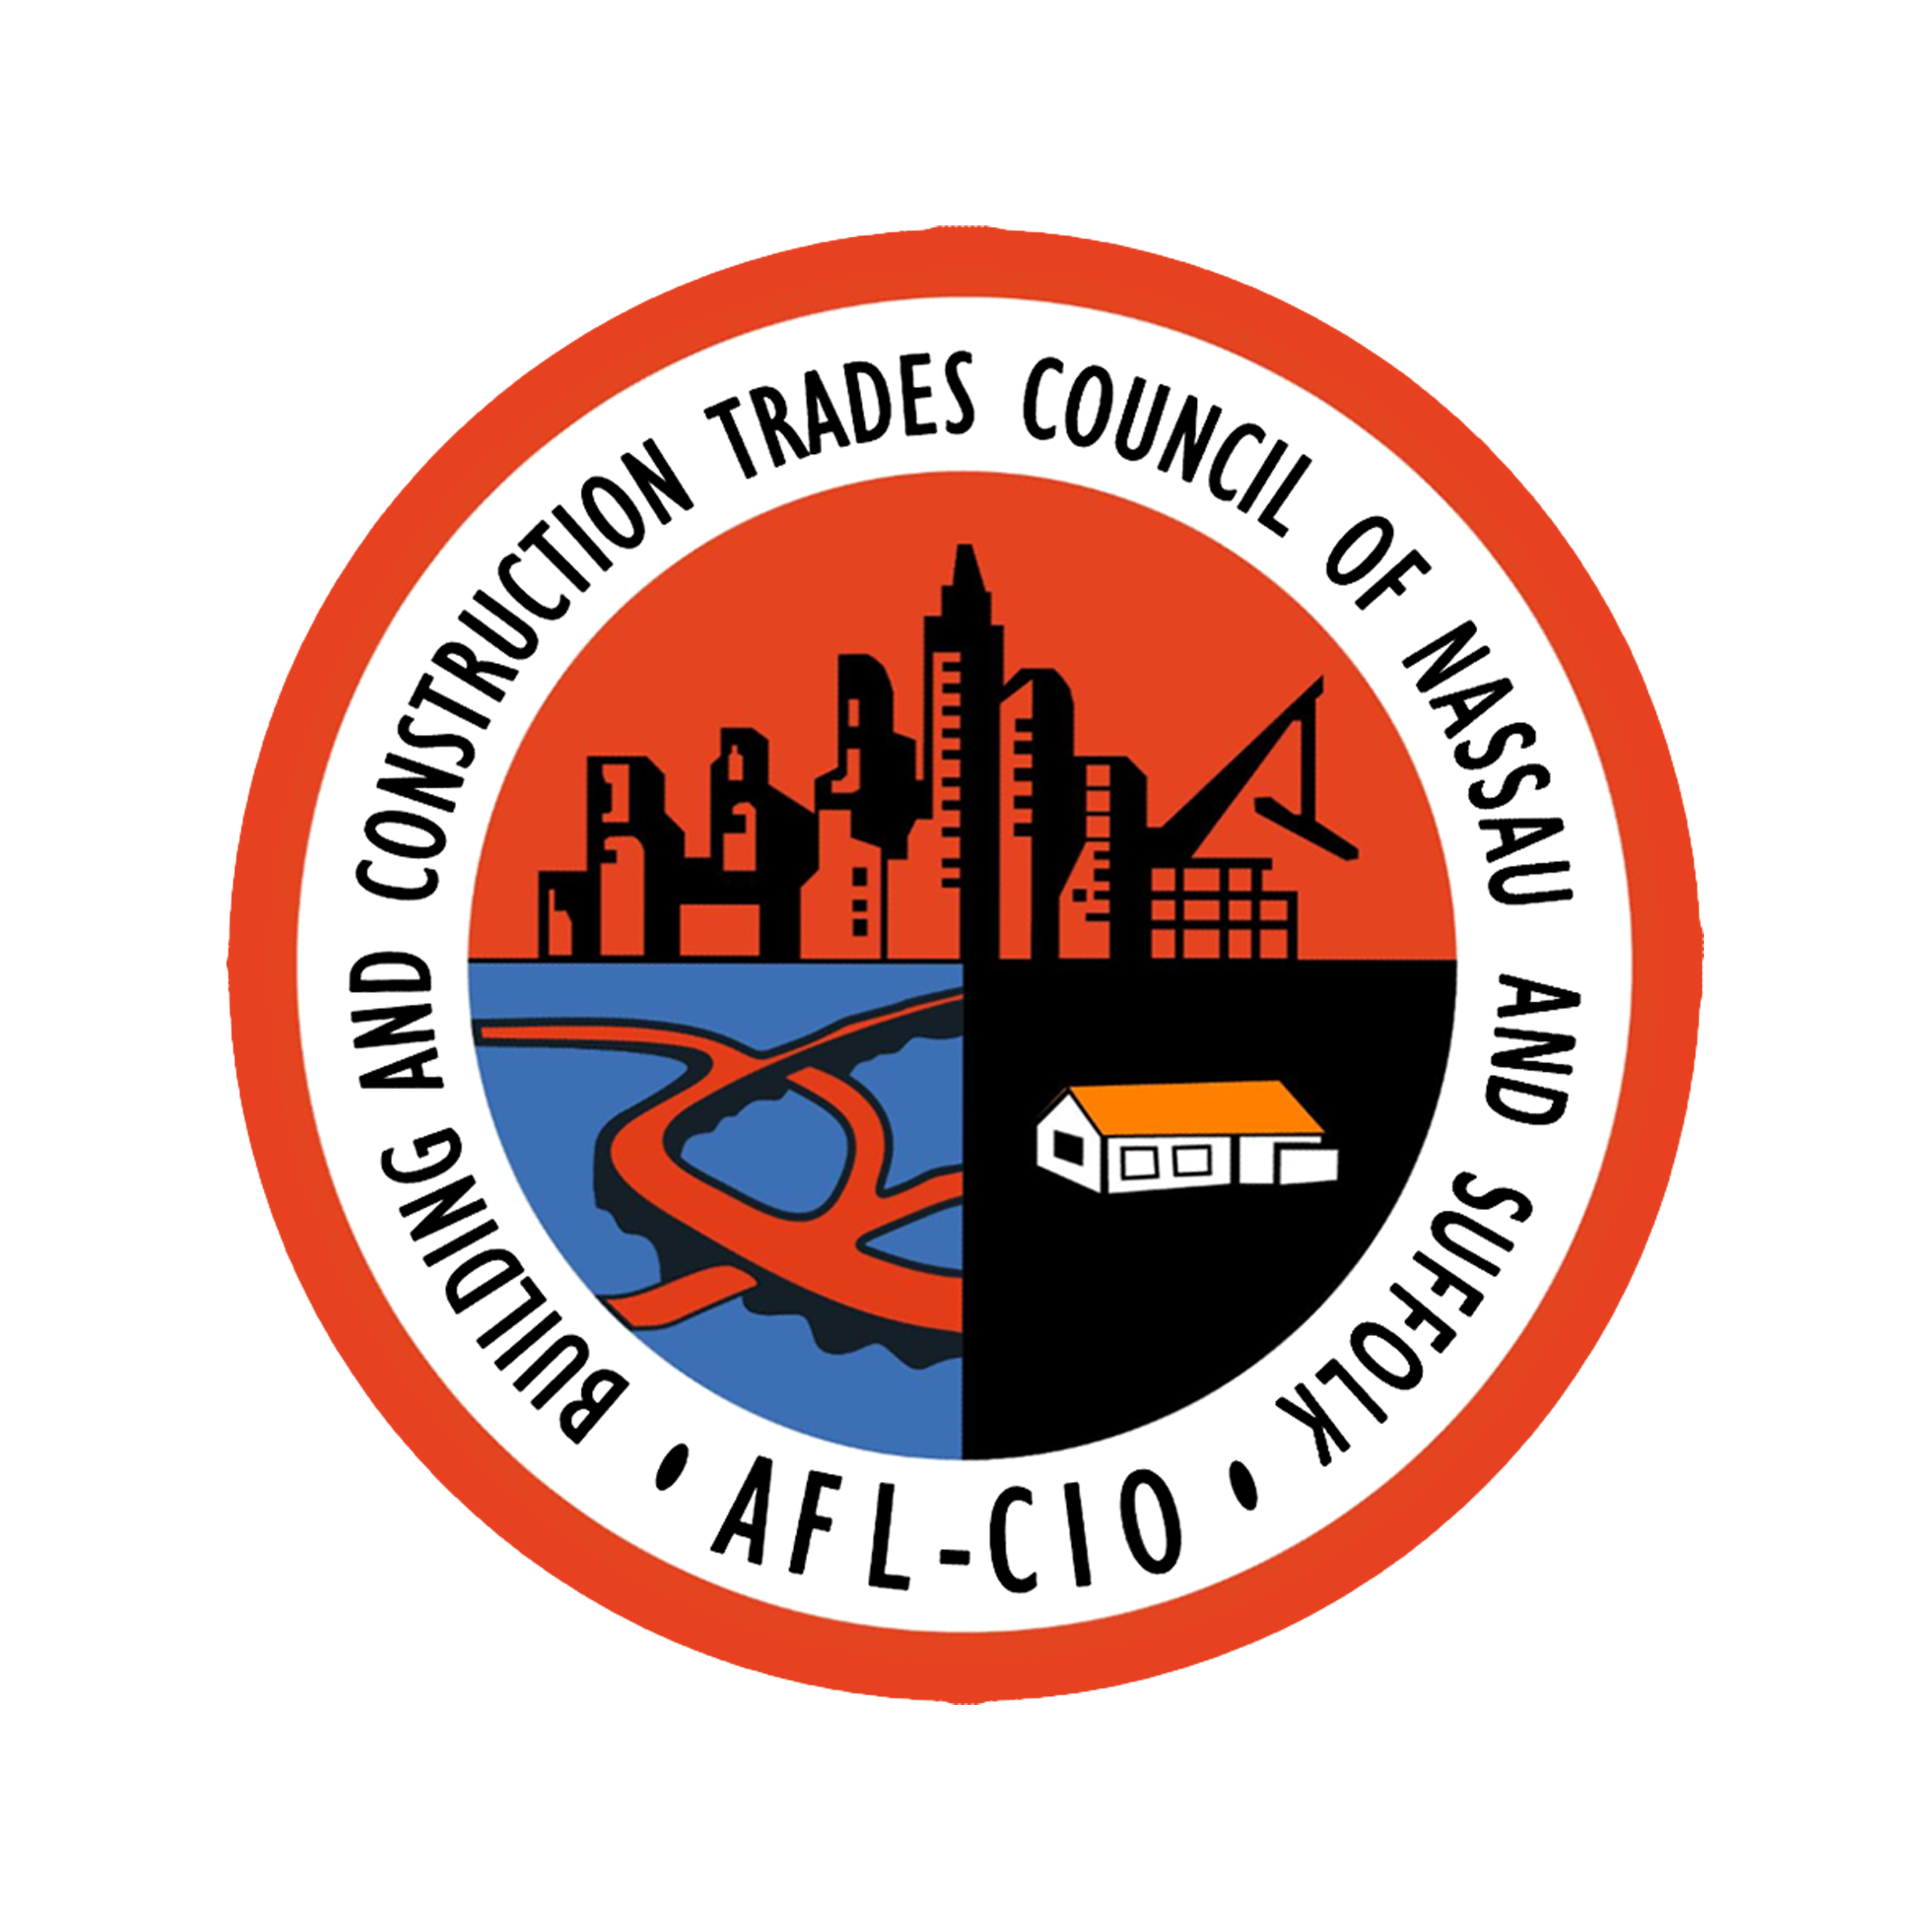 BCTC of nassau and suffolk counties logo